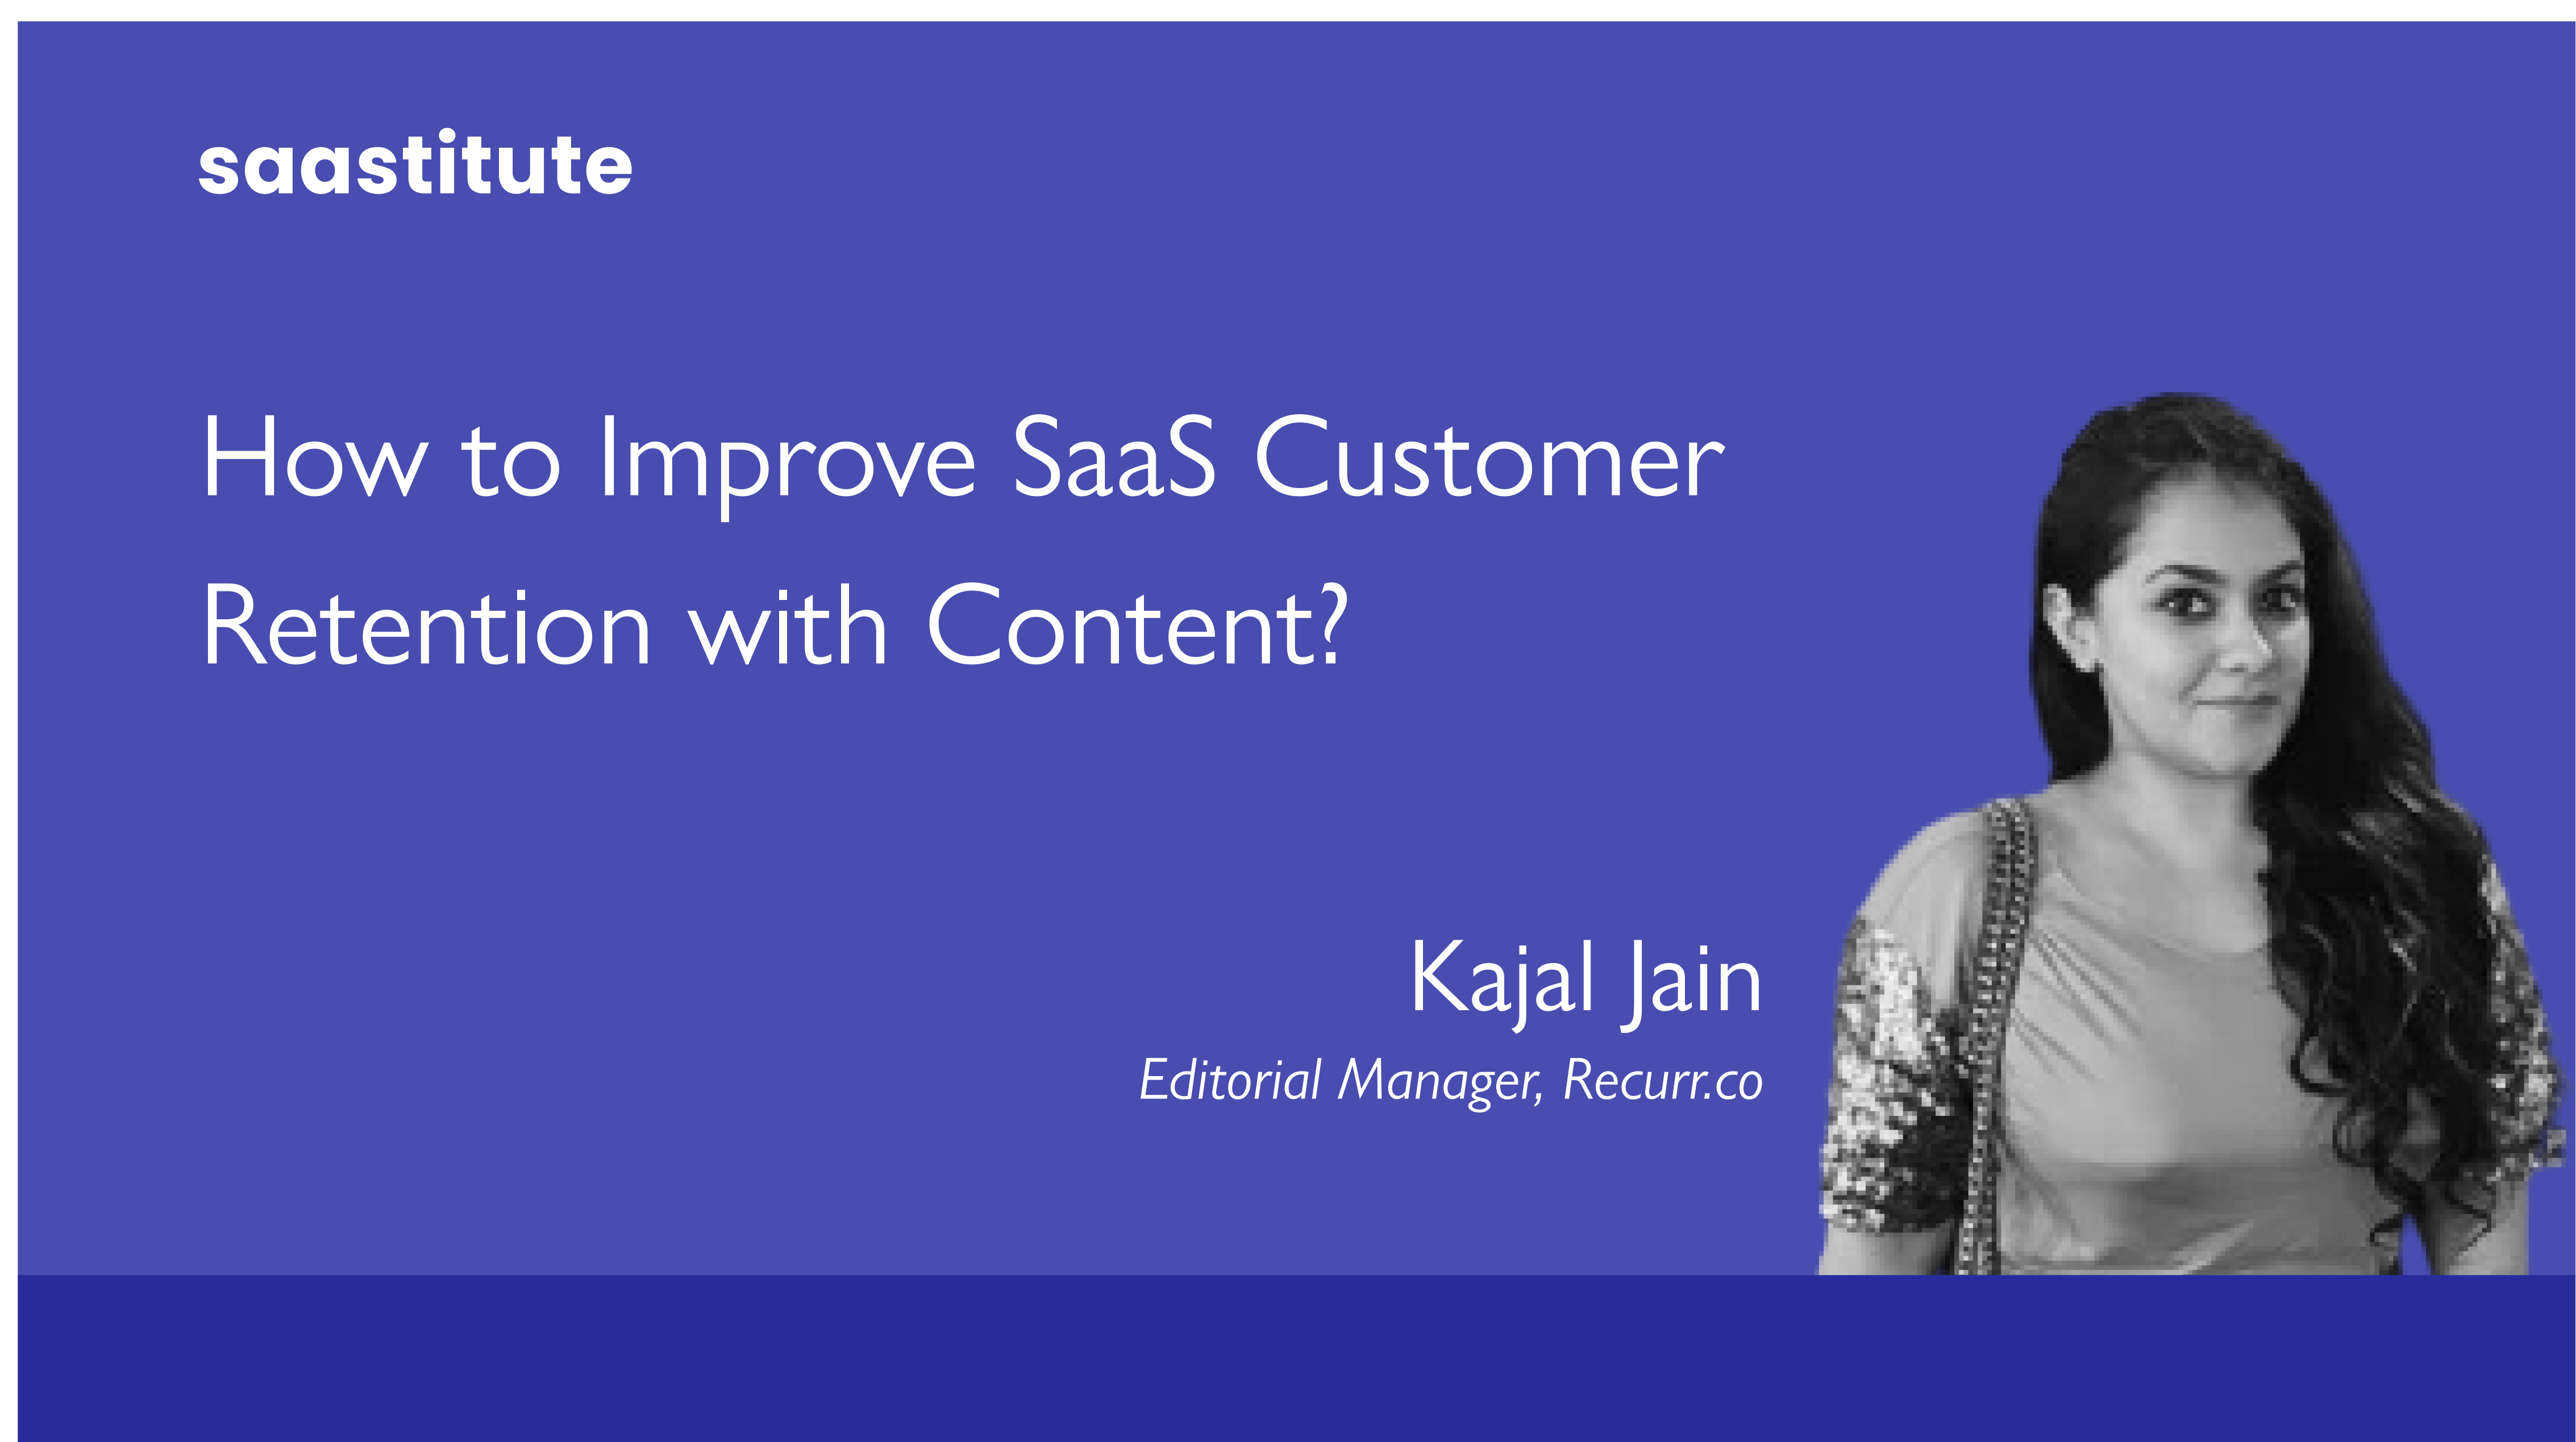 Content Rules for Better SaaS Customer Retention